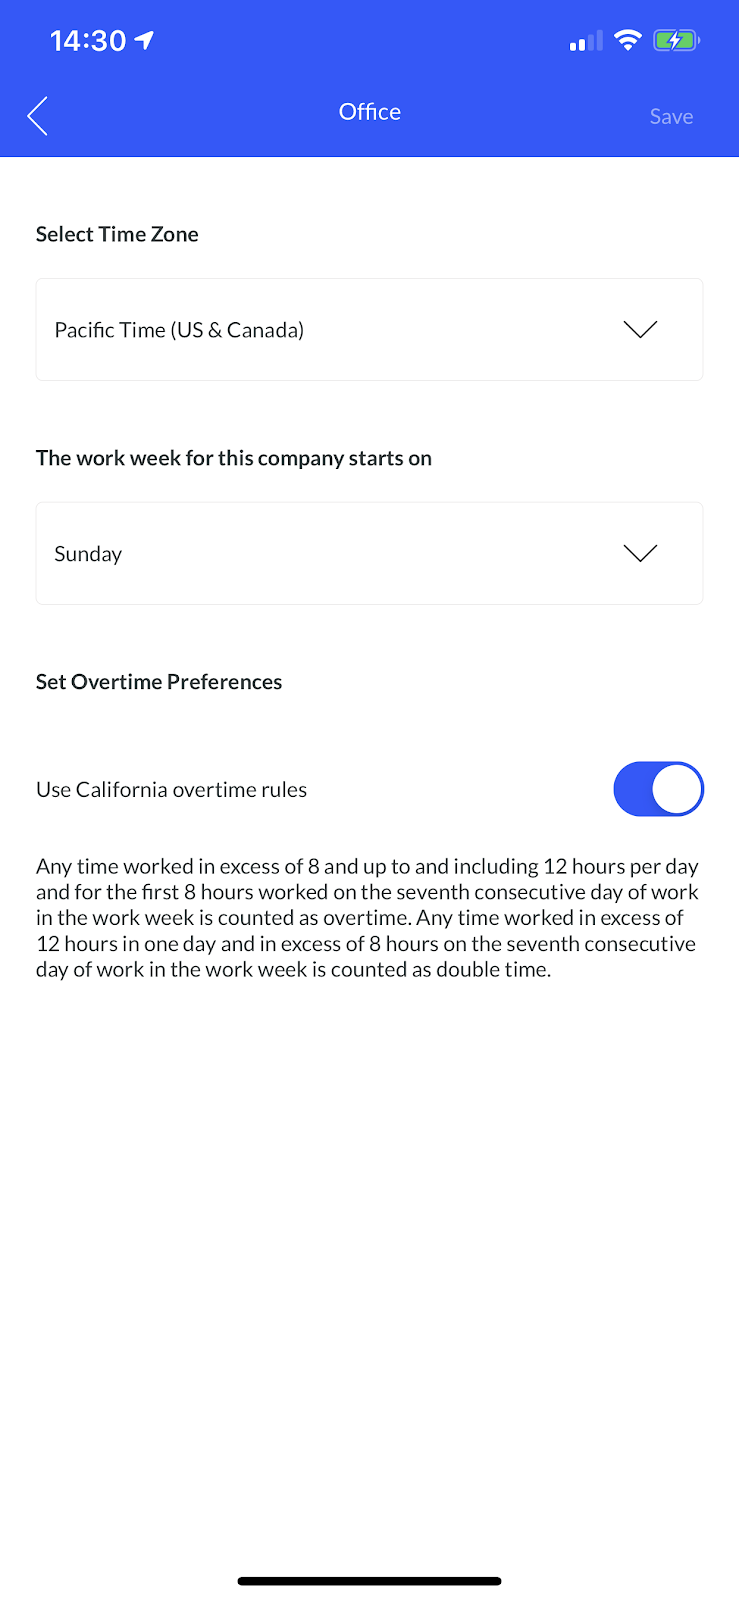 Screenshot showing the 'Office' screen where you can edit your office settings